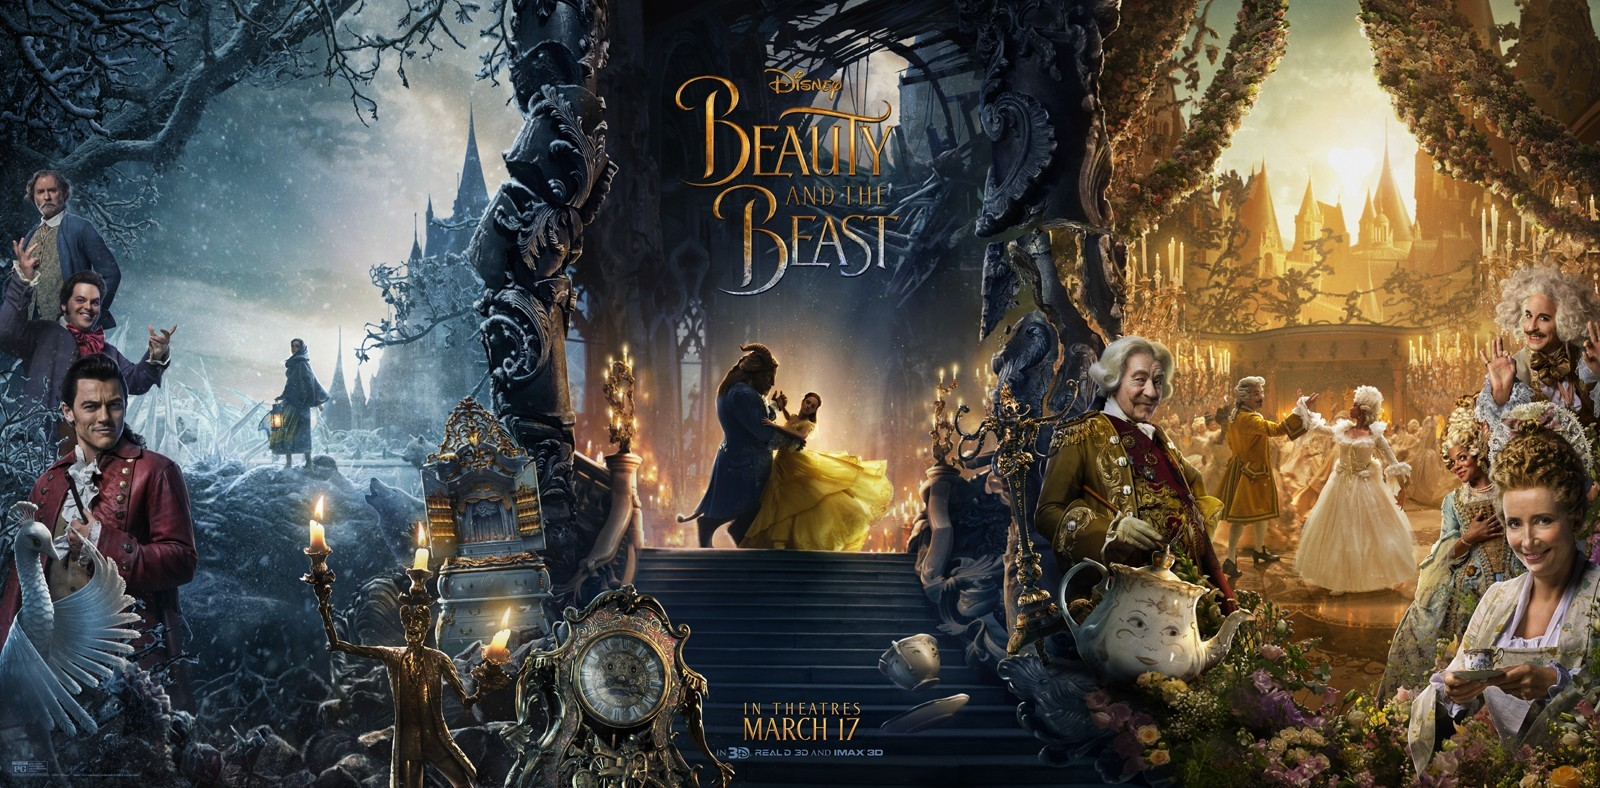 Can my child see BEAUTY & THE BEAST?